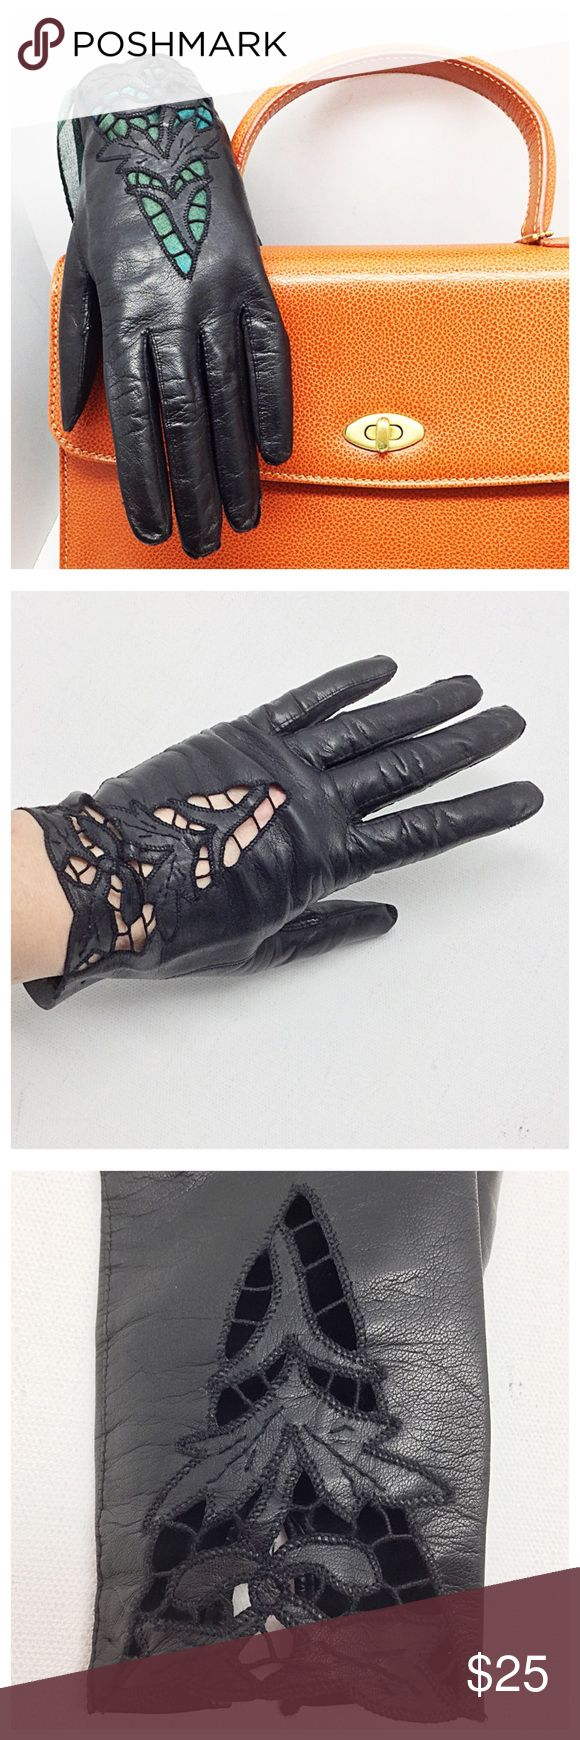 """💋Vintage Lace Cutout Gloves💋 🚫Trades/Holds🚫 *  Buttery soft black leather w/ 'lace' cutouts *  Bracelet length: about 7 3/4"""" middle fingertip to end *  V-shaped gusset between fingers for easy movement *  Soft suede interior *  Measures as sz 7 (6 3/4"""" around knuckles), middle finger length=3"""" *  Minimal stretch: my hand is 7 1/8 & these are a bit too small, even though I usually wear sz 7 *  Pre-loved, tiny holes from price tag  *  Covershot bag & scarf inside glove not included 🙂 Plz…"""